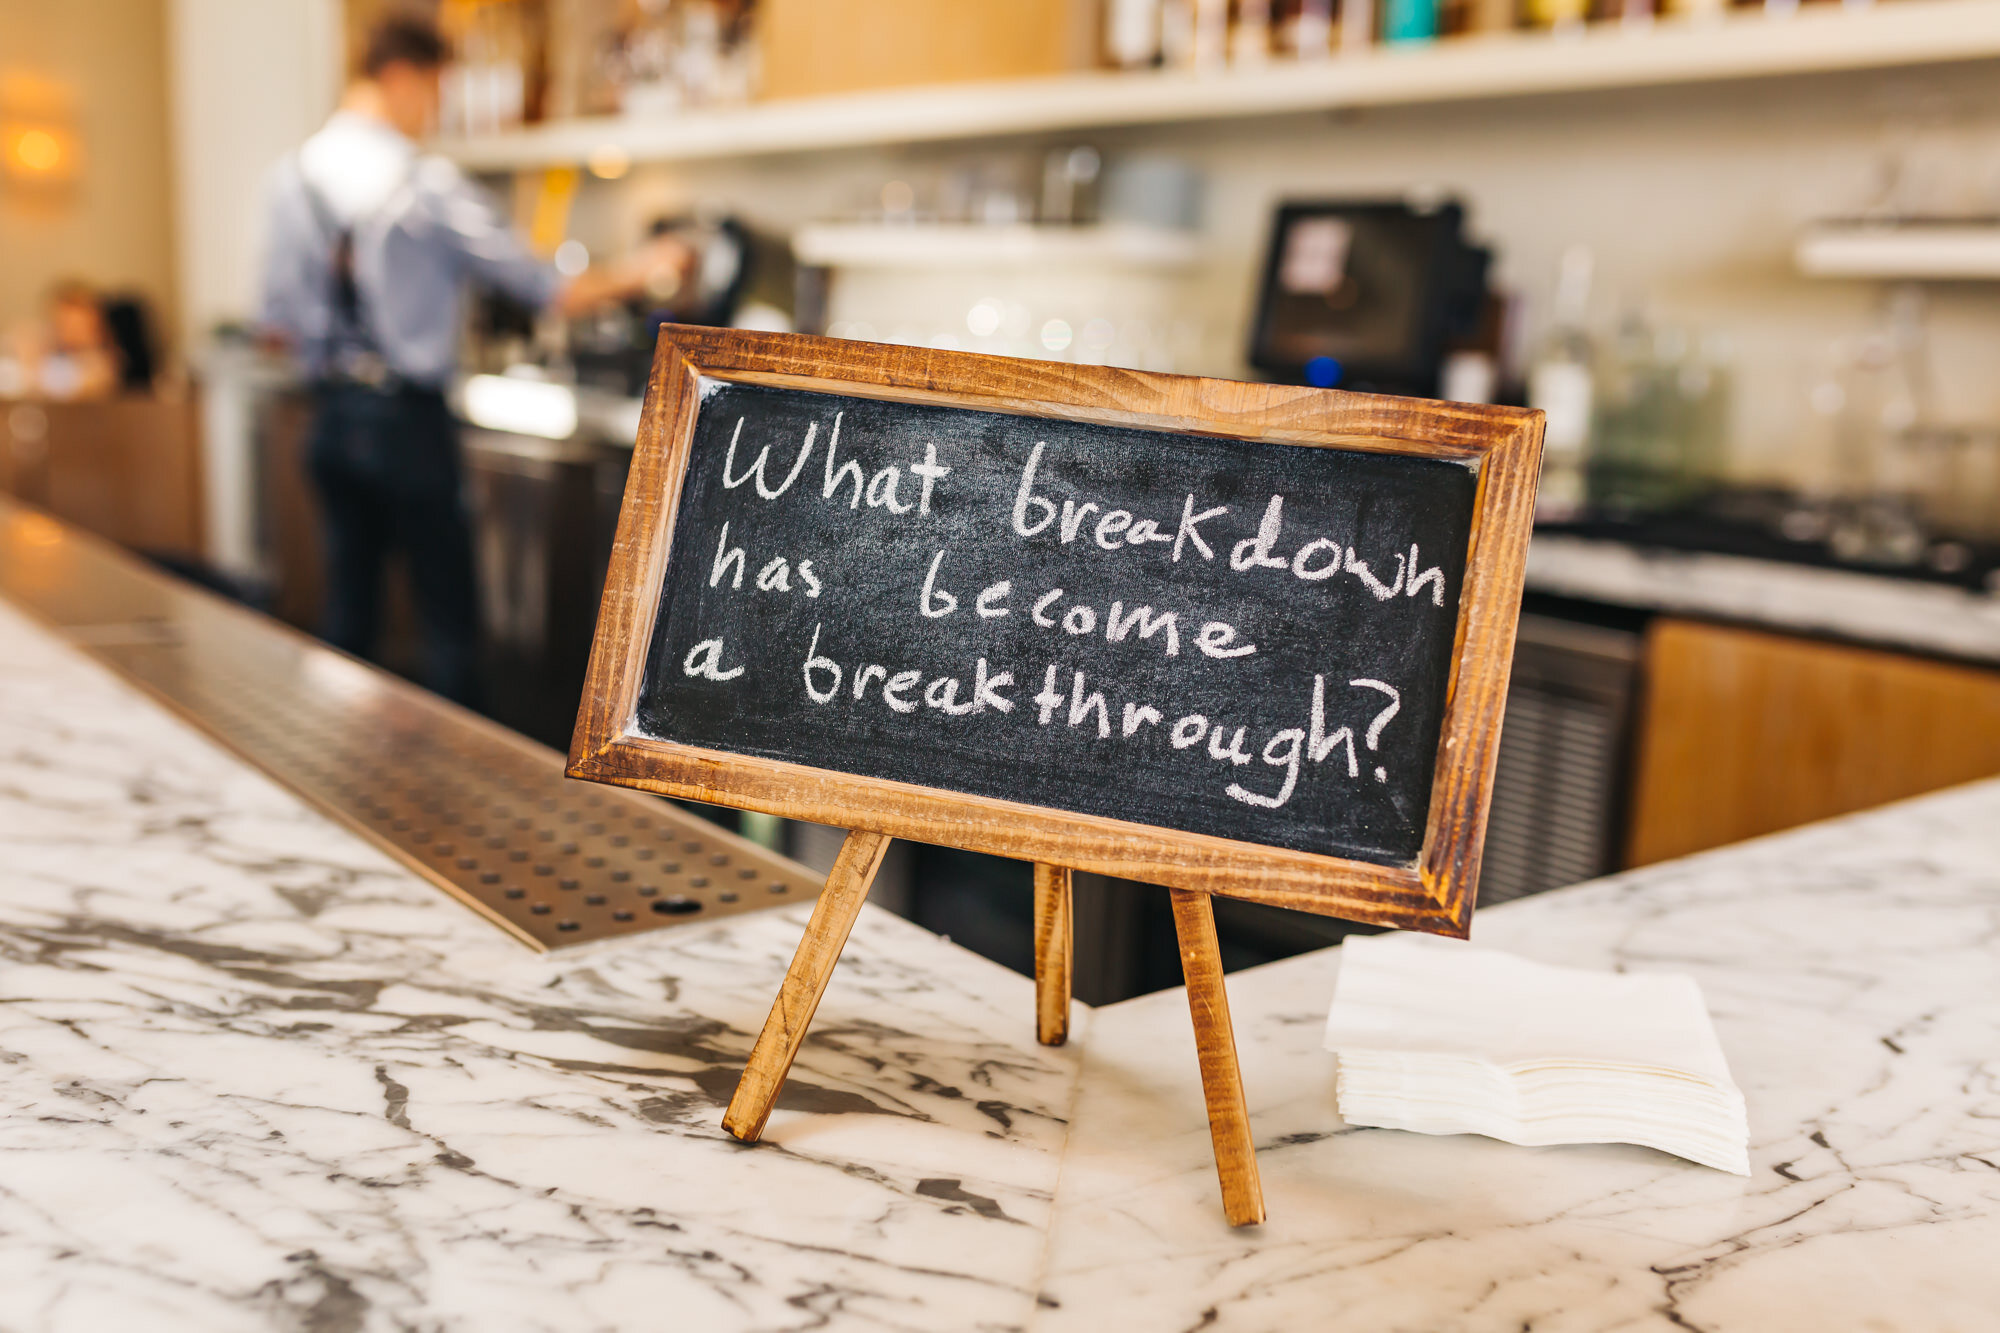 Question of the day: What breakdown has become a breakthrough?